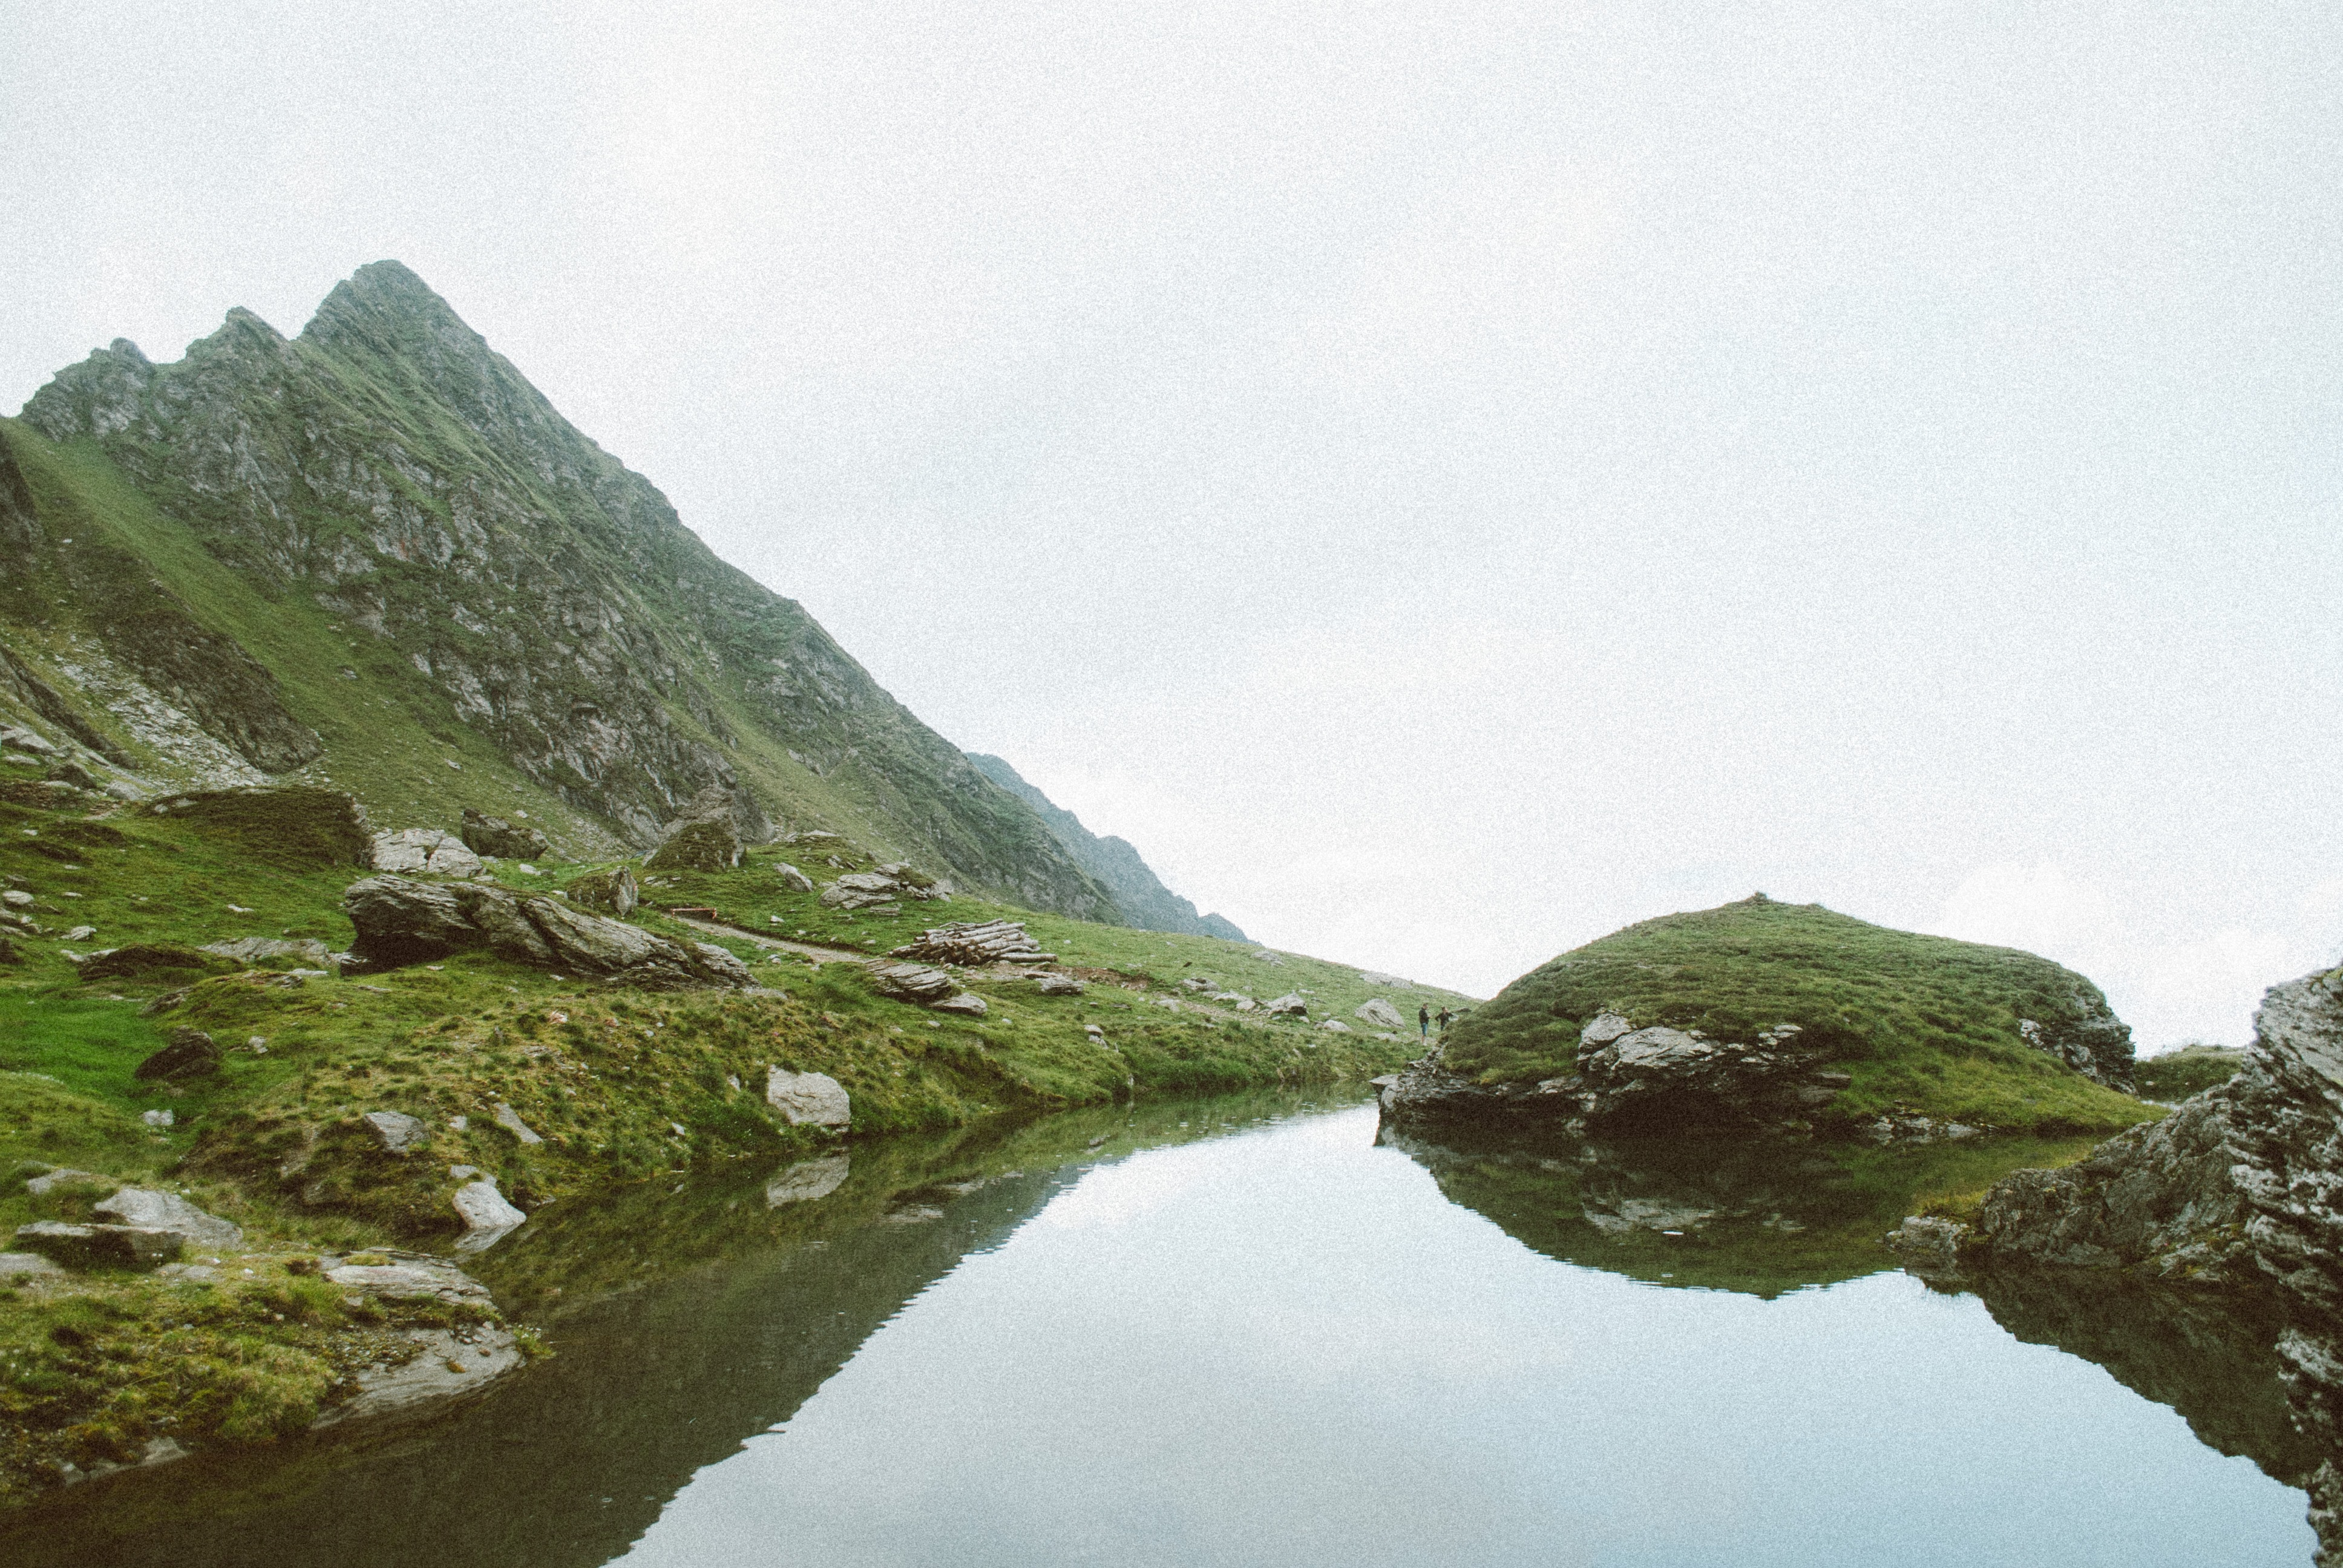 Reflective water by a grassy hillside on a foggy day